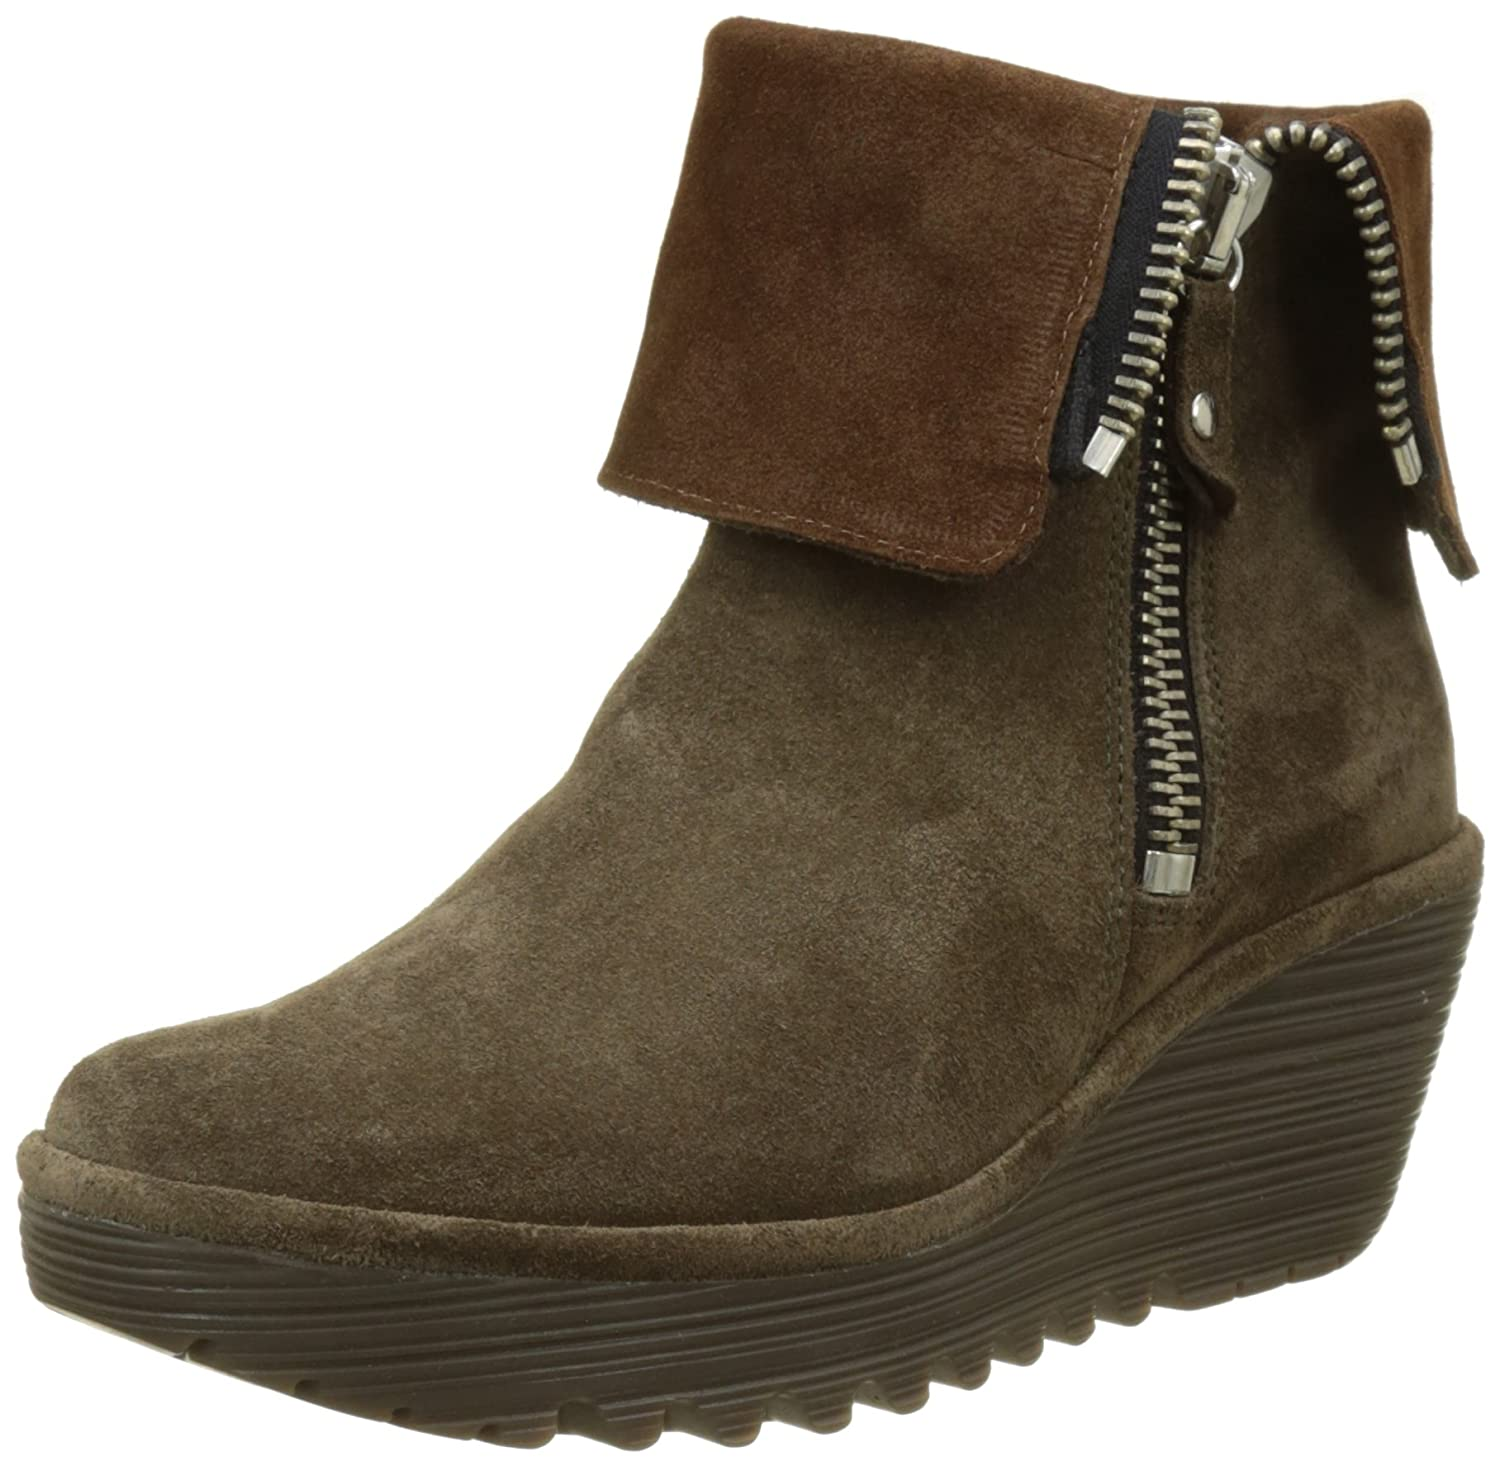 FLY London Yex668fly - Botas Mujer35 EU|Marrón (Sludge/Camel)